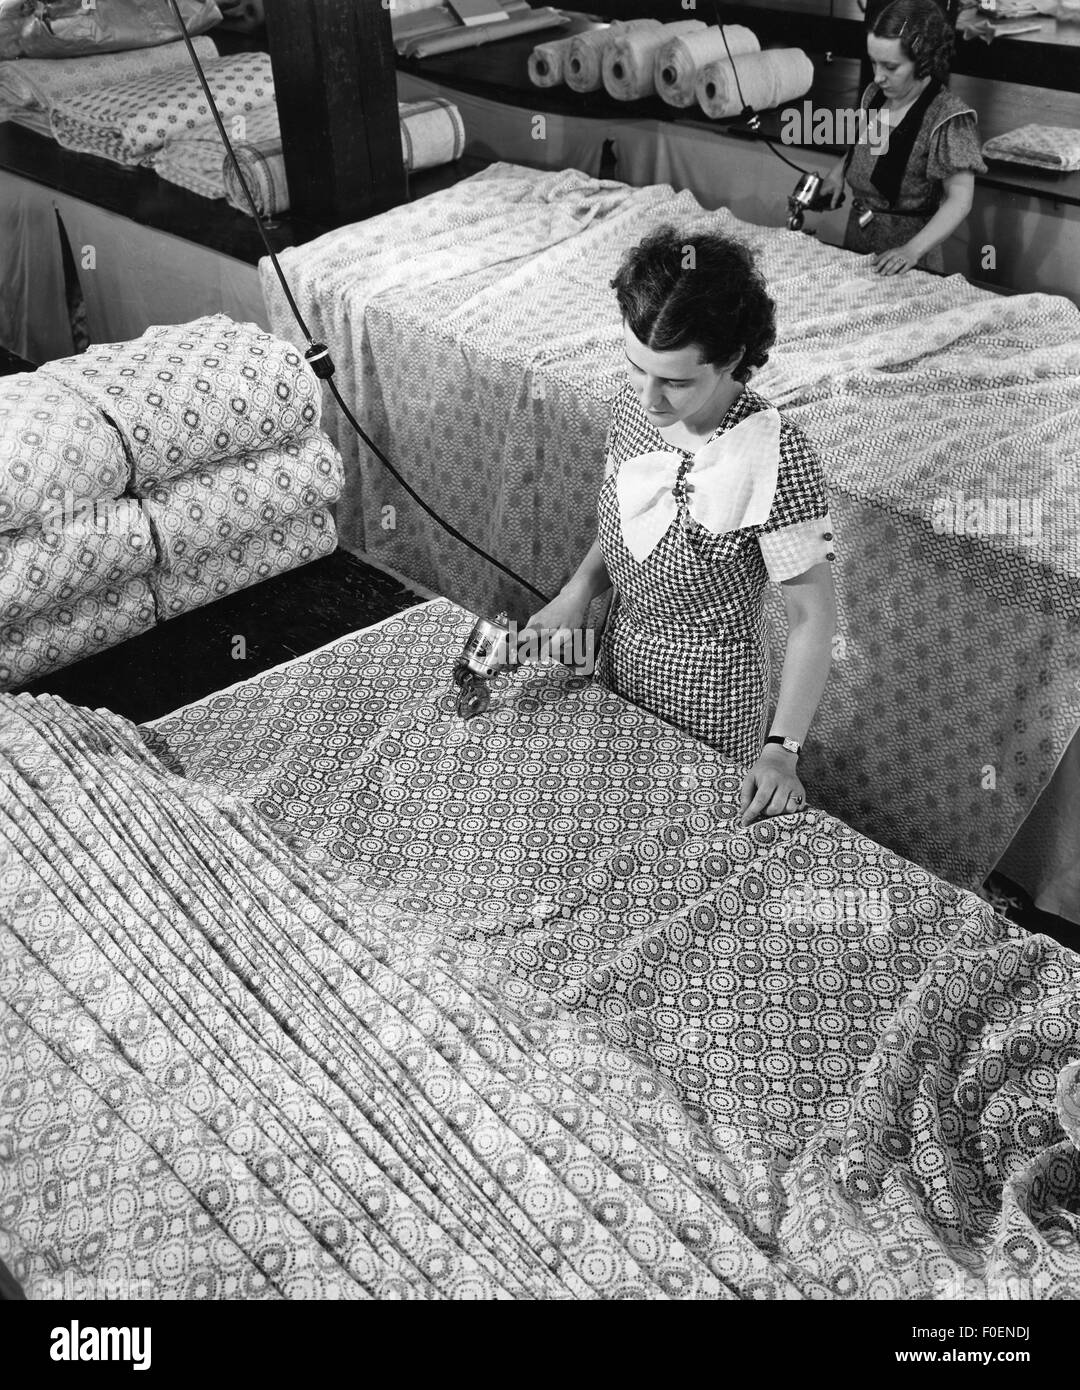 industry, textiles, women tailoring fabrics, American Fabrics, Bridgeport, 1950s, Additional-Rights-Clearences-NA Stock Photo